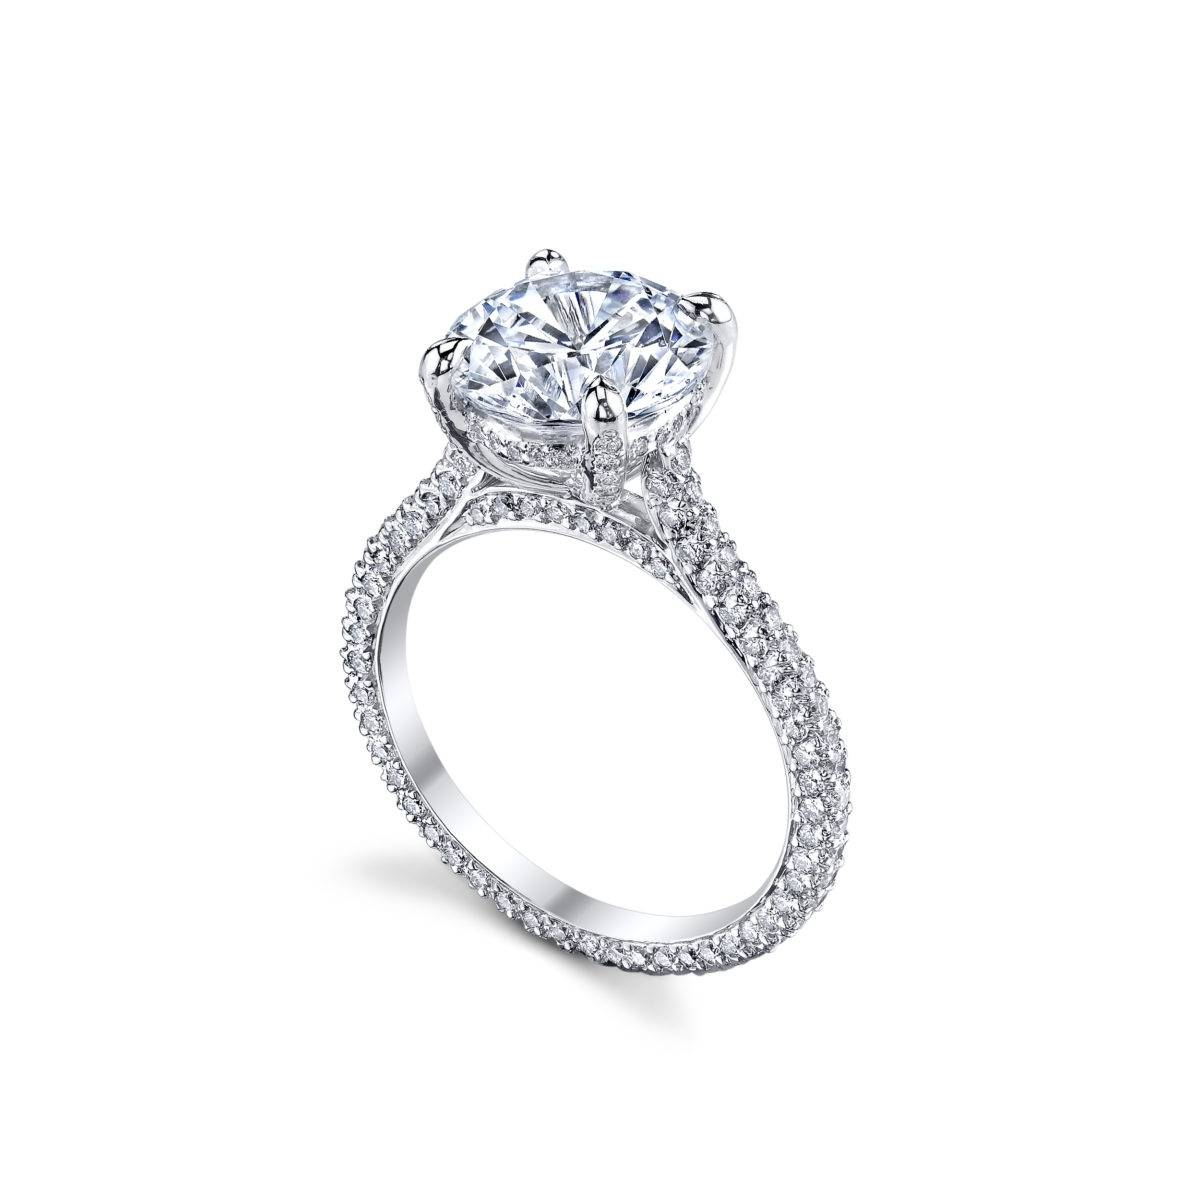 Michael B. Paris Diamond Engagement Ring With Chicago Diamond Engagement Rings (Gallery 2 of 15)